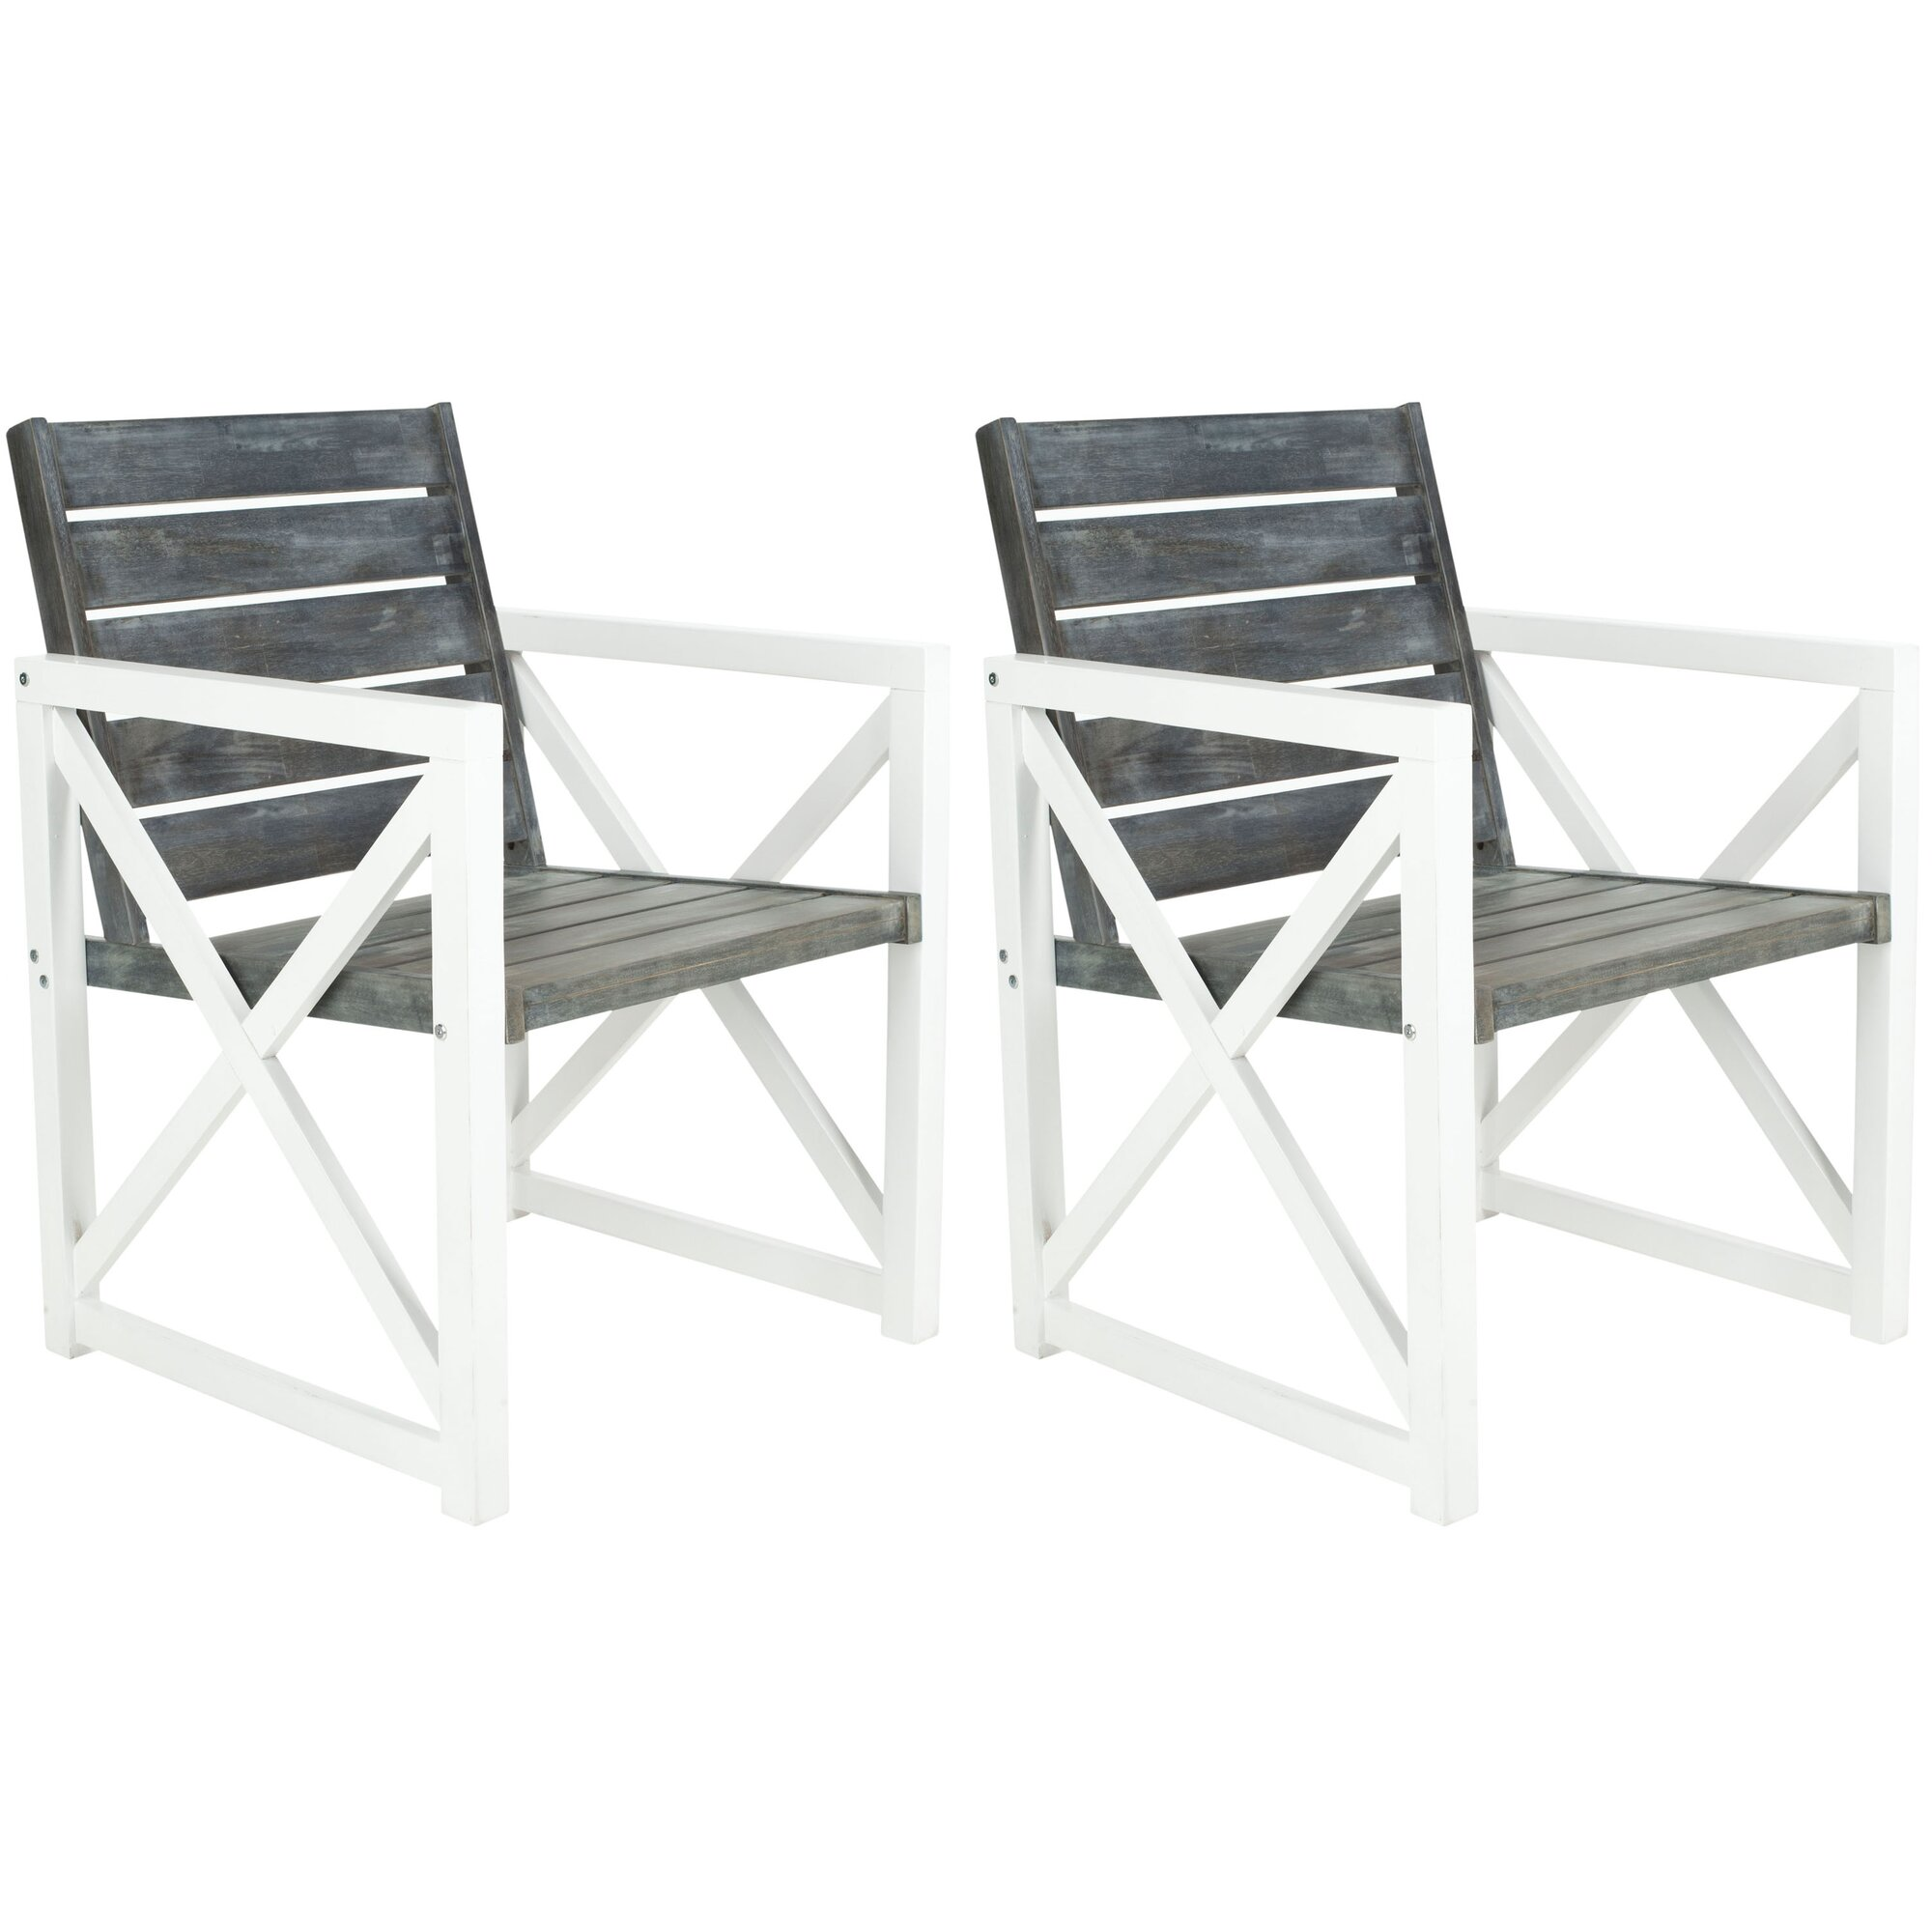 Folding Arm Chair Instachair